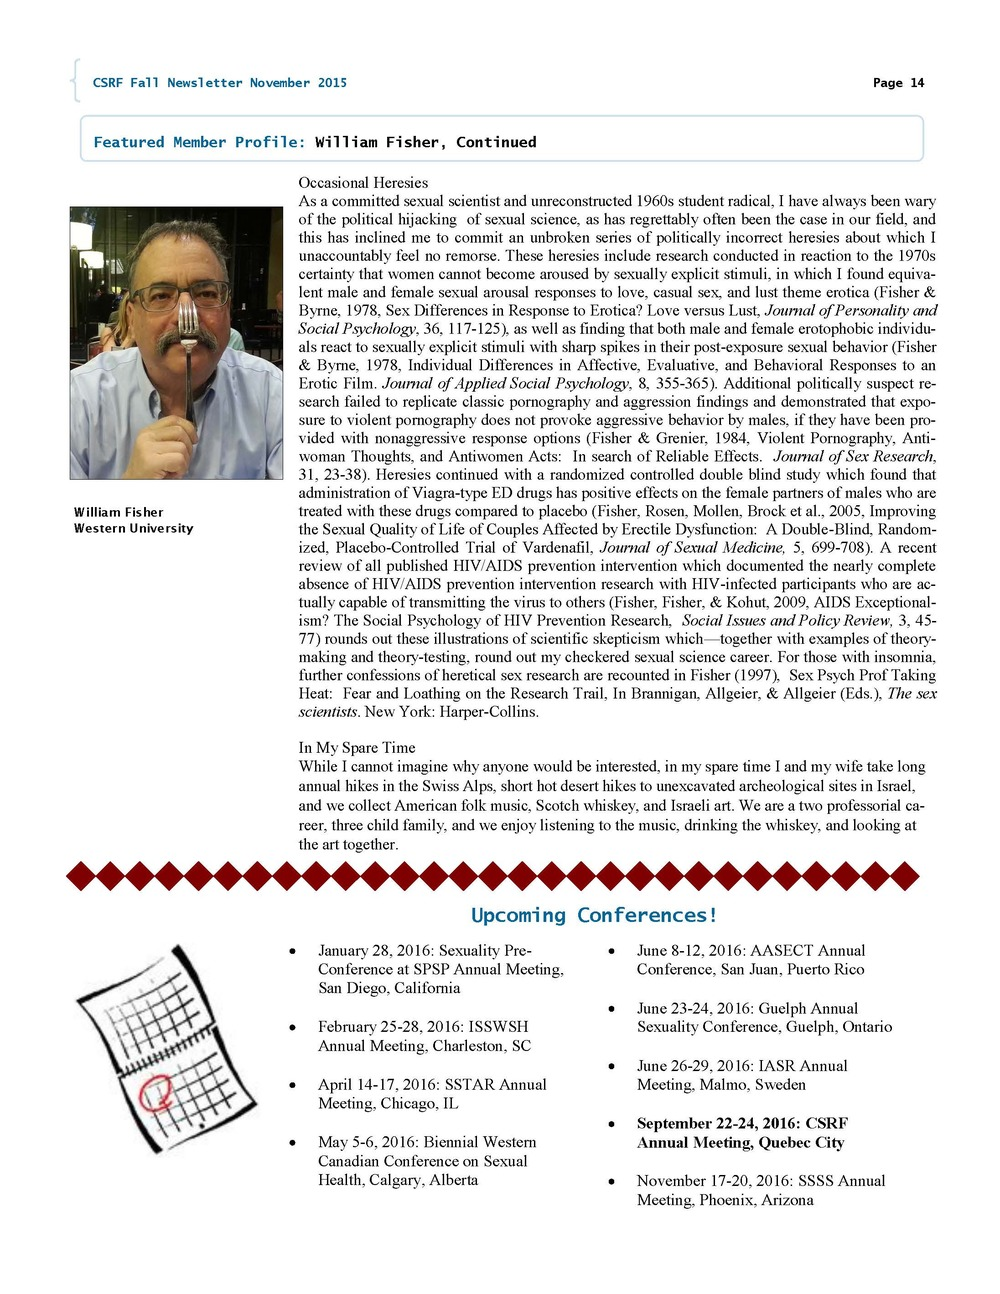 CSRF Fall Newsletter 2015_Page_14.jpg